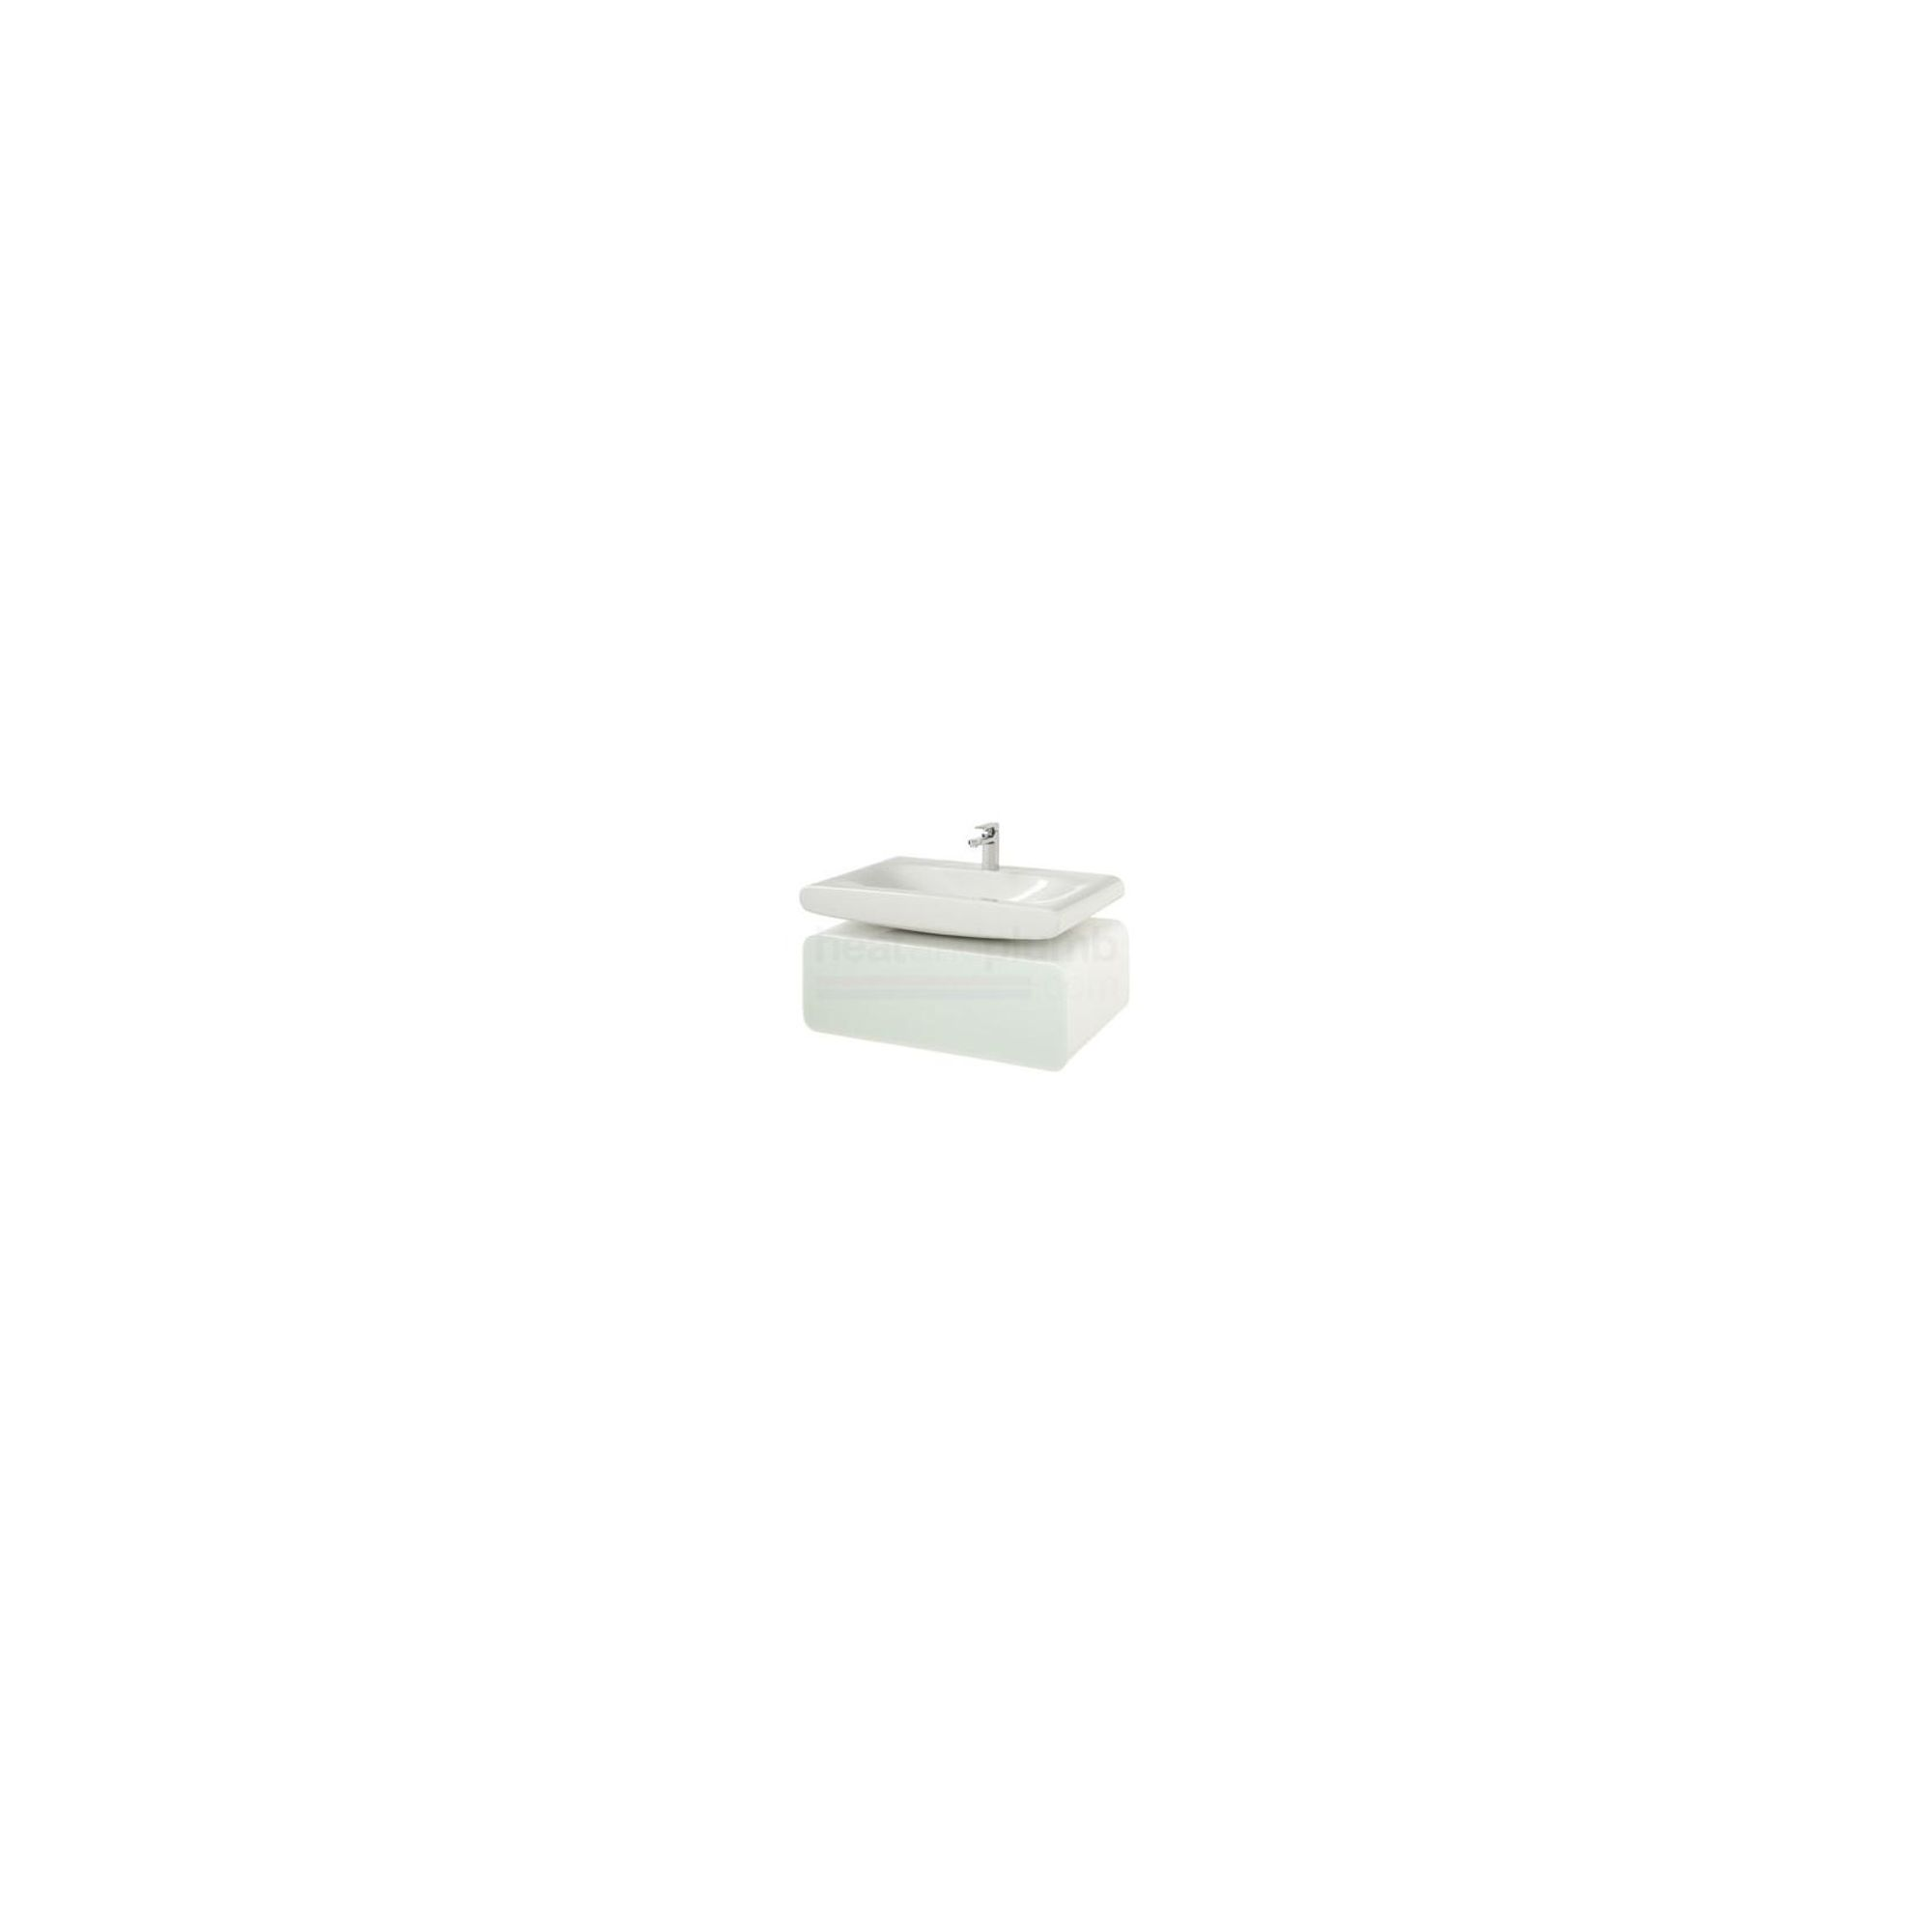 Ideal Standard Moments Basin Unit 900mm Wide Gloss White